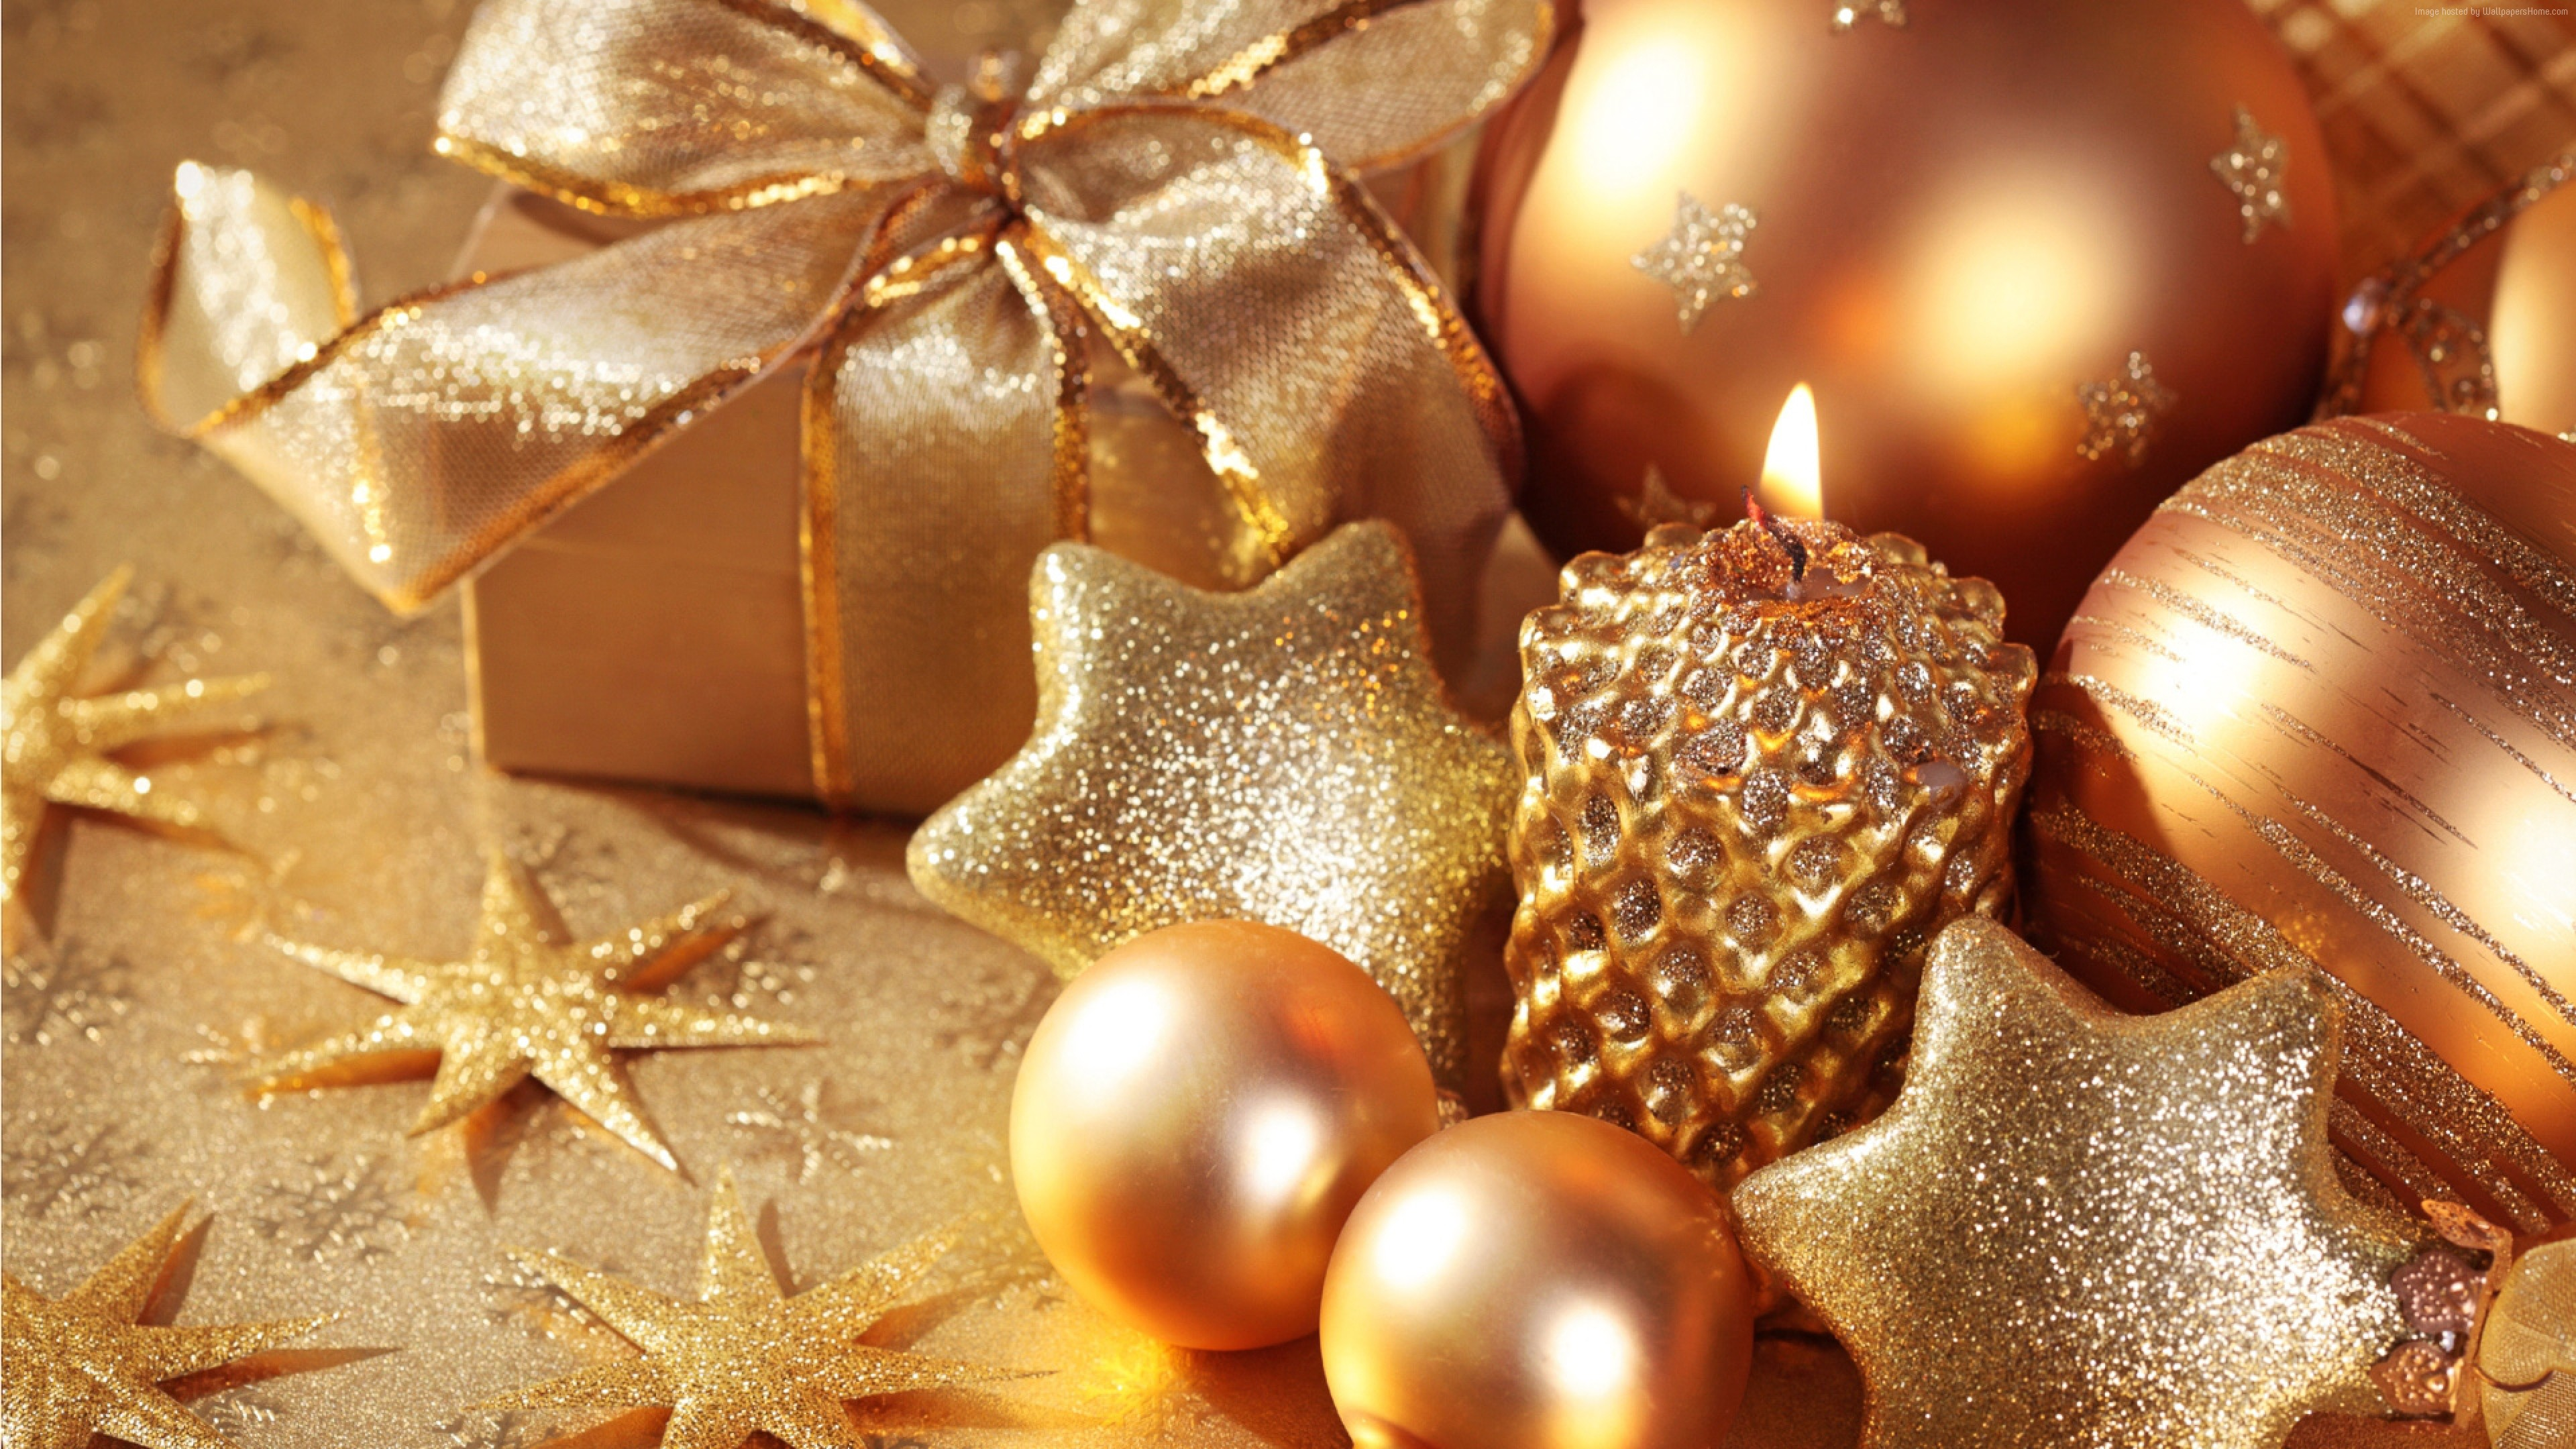 Wallpaper Christmas, New Year, star, candle, gift, balls, gold, decorations, Holidays